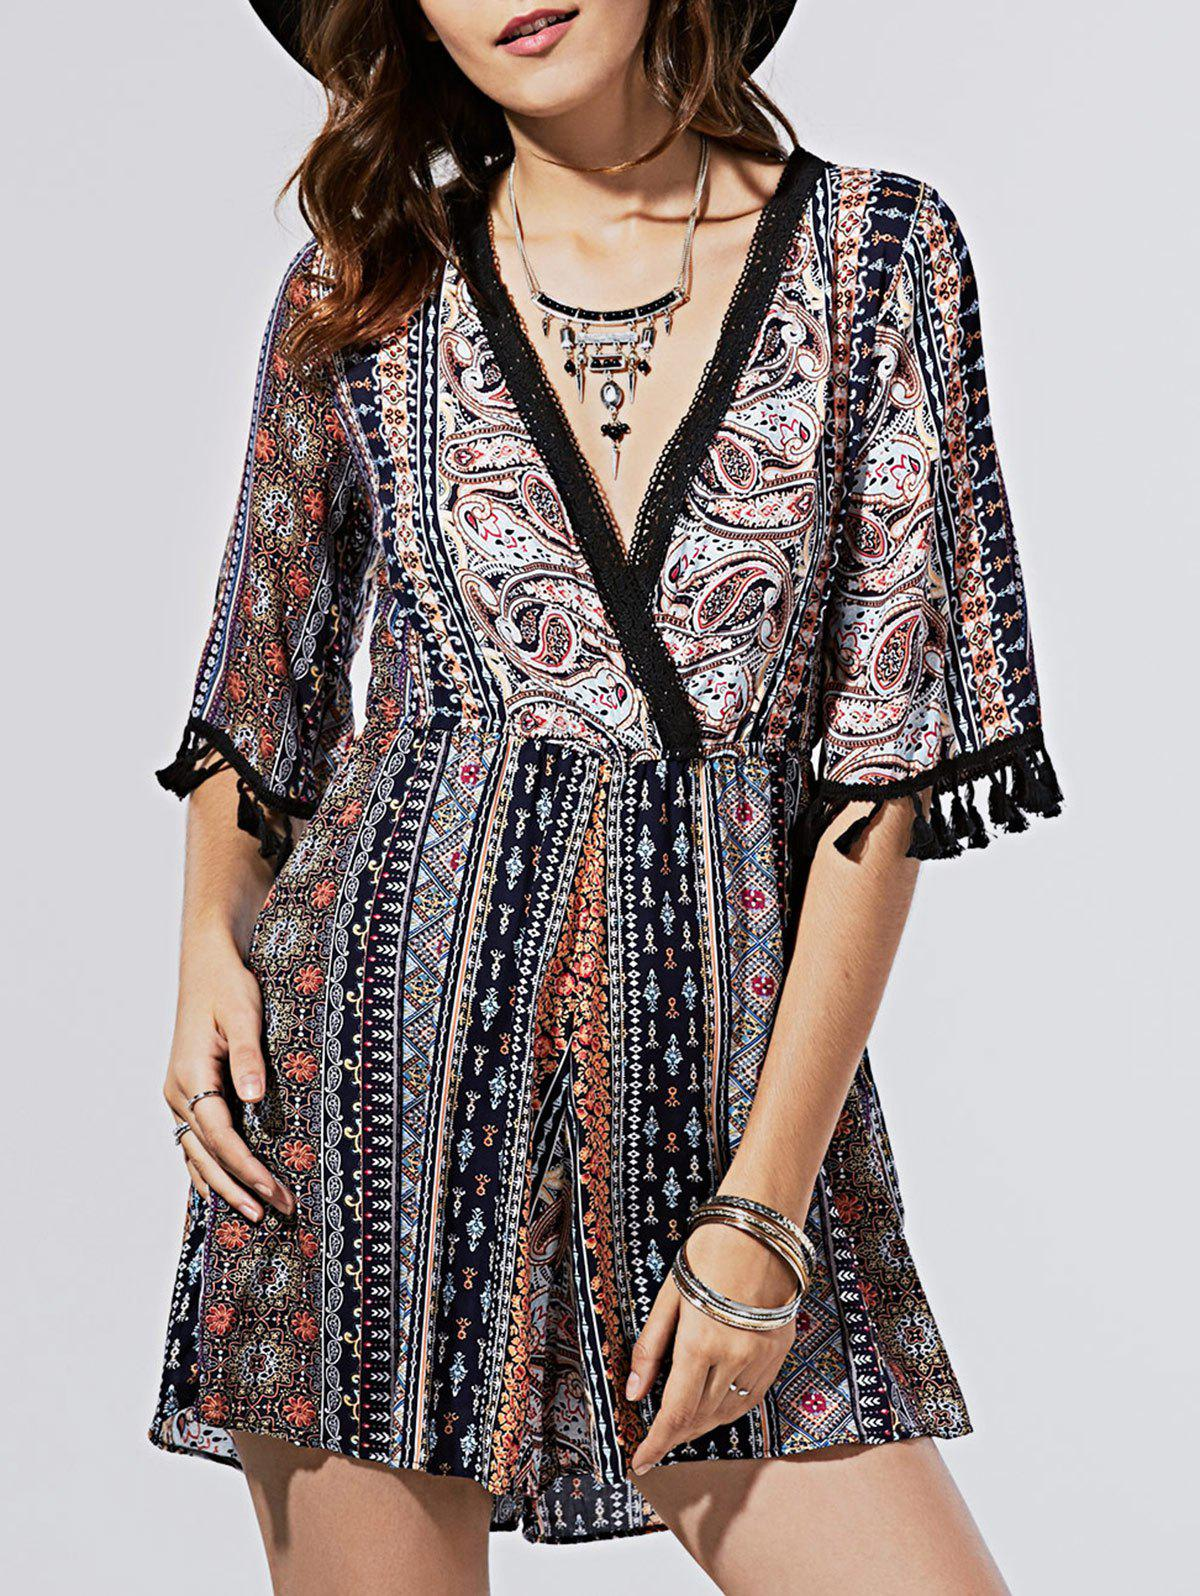 Stylish Women's Elastic Waist Tassel Trim Printed Romper - COLORMIX ONE SIZE(FIT SIZE XS TO M)